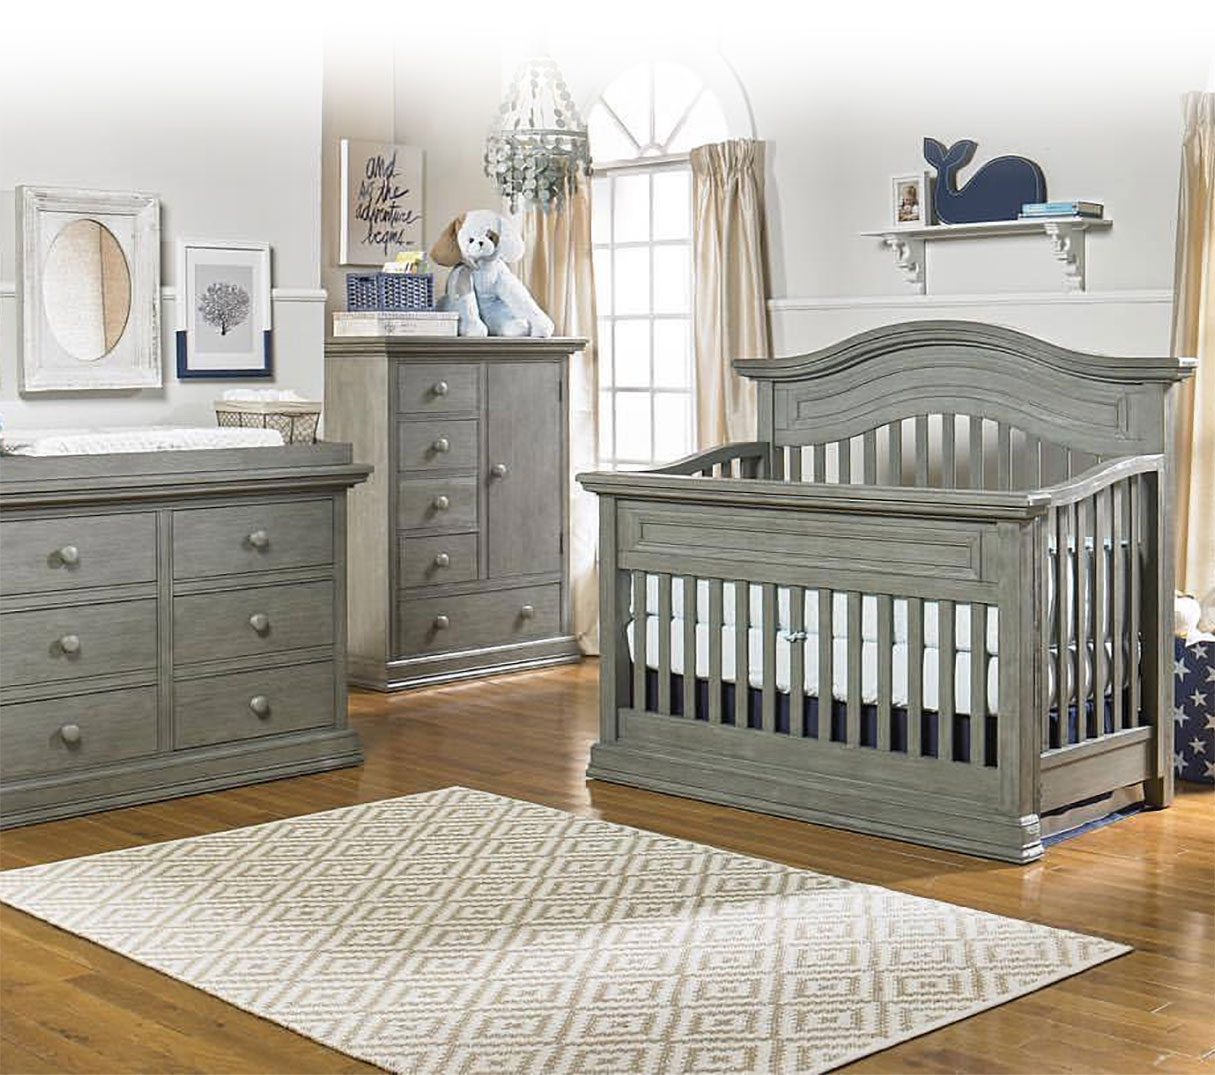 crib-and-teen-furniture